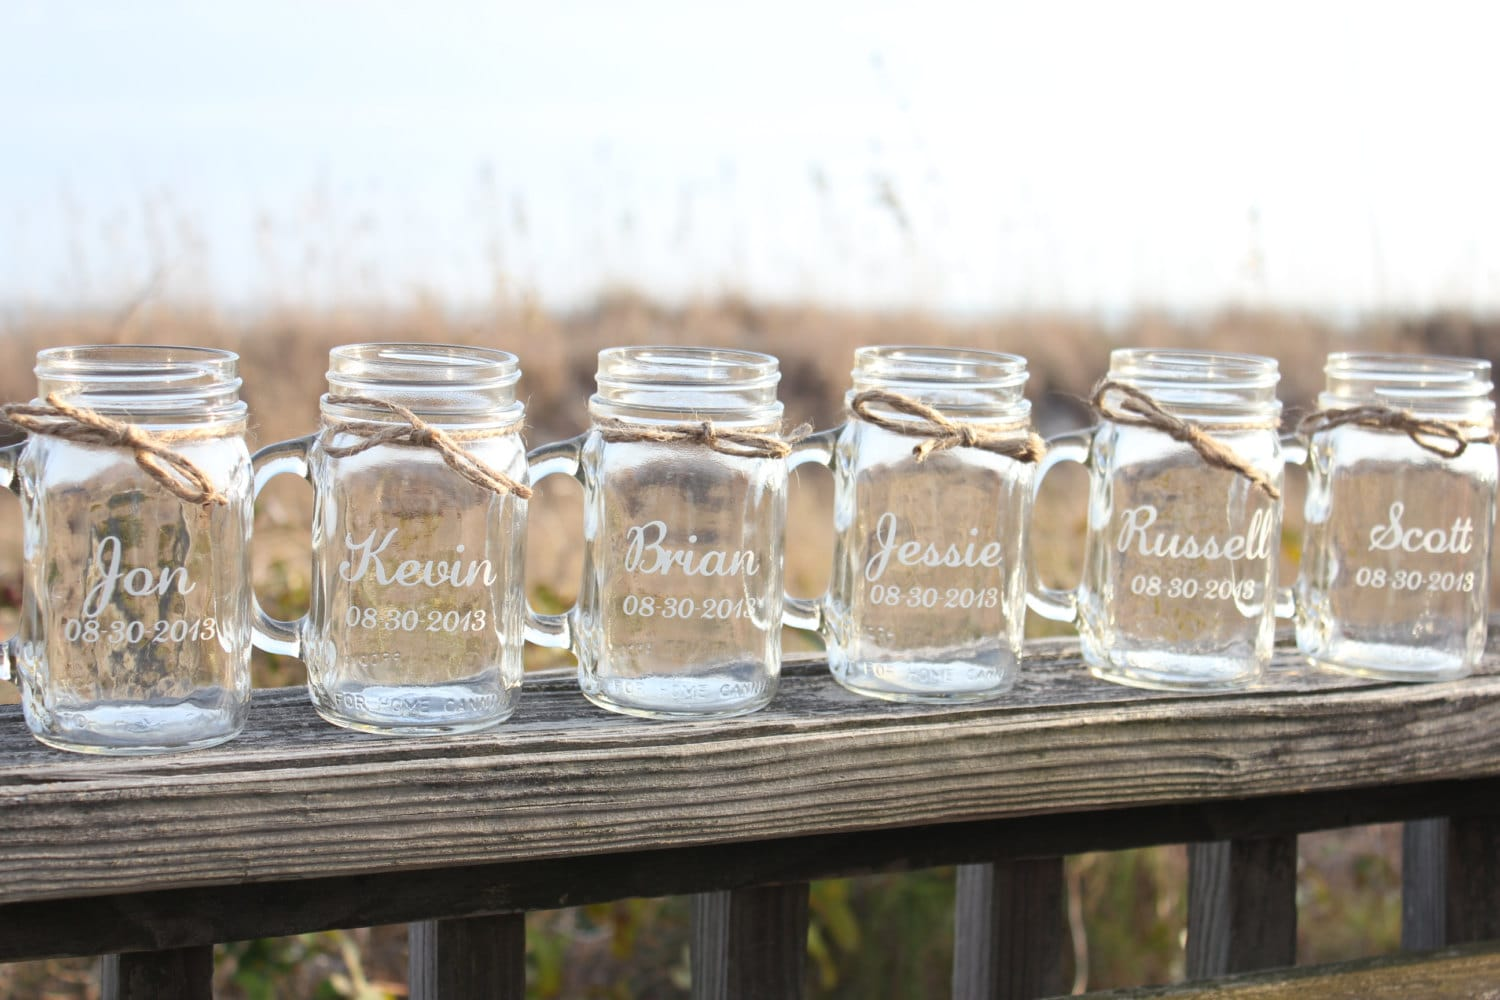 10 Mason Jars mugs Personalized Mason Jar Mugs Engraved